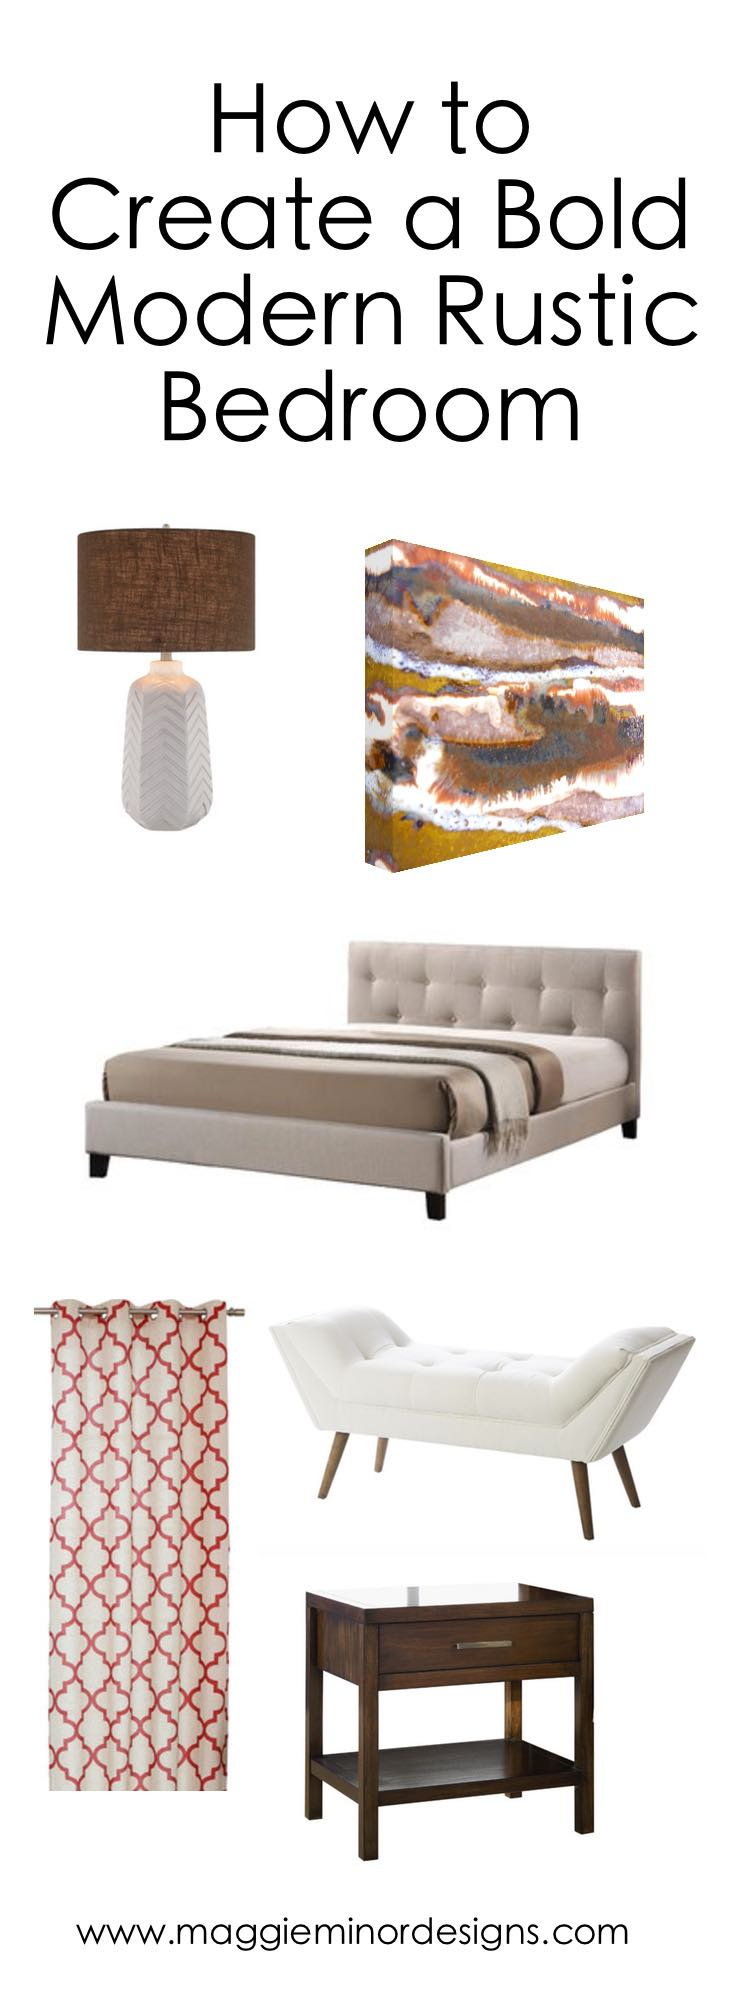 How to Create a Bold Modern Rustic Bedroom Pinterest.png